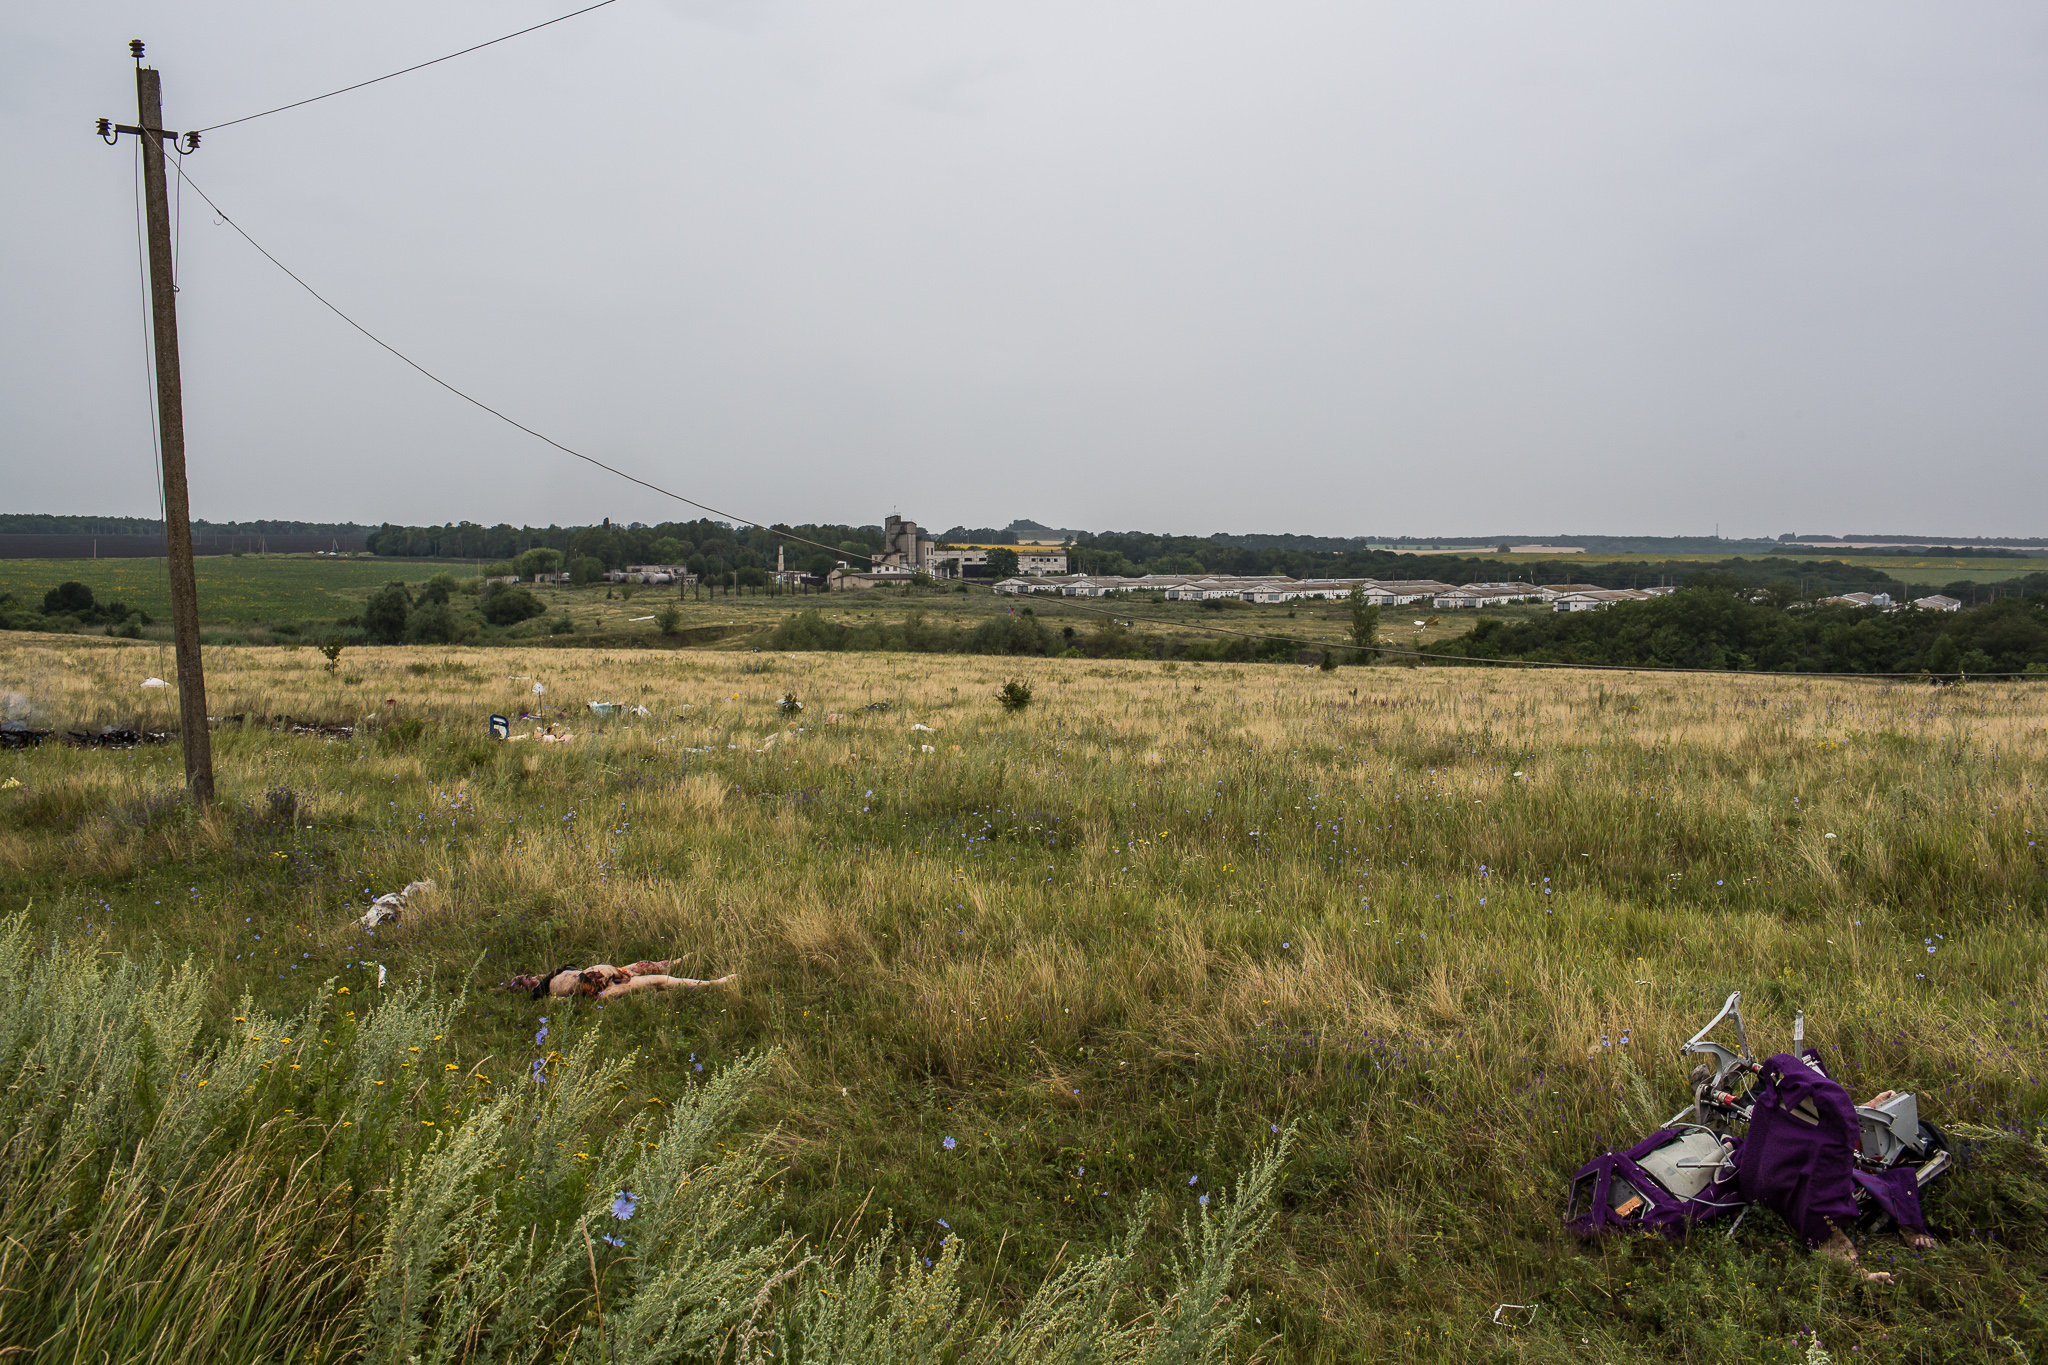 The bodies of victims of the crash of Malaysia Airlines flight MH17 lie in a field on July 18, 2014 in Grabovo, Ukraine. The flight, traveling from Amsterdam to Kuala Lumpur, crashed on the Ukraine/Russia border near the town of Shaktersk. The Boeing 777 was carrying 298 people.